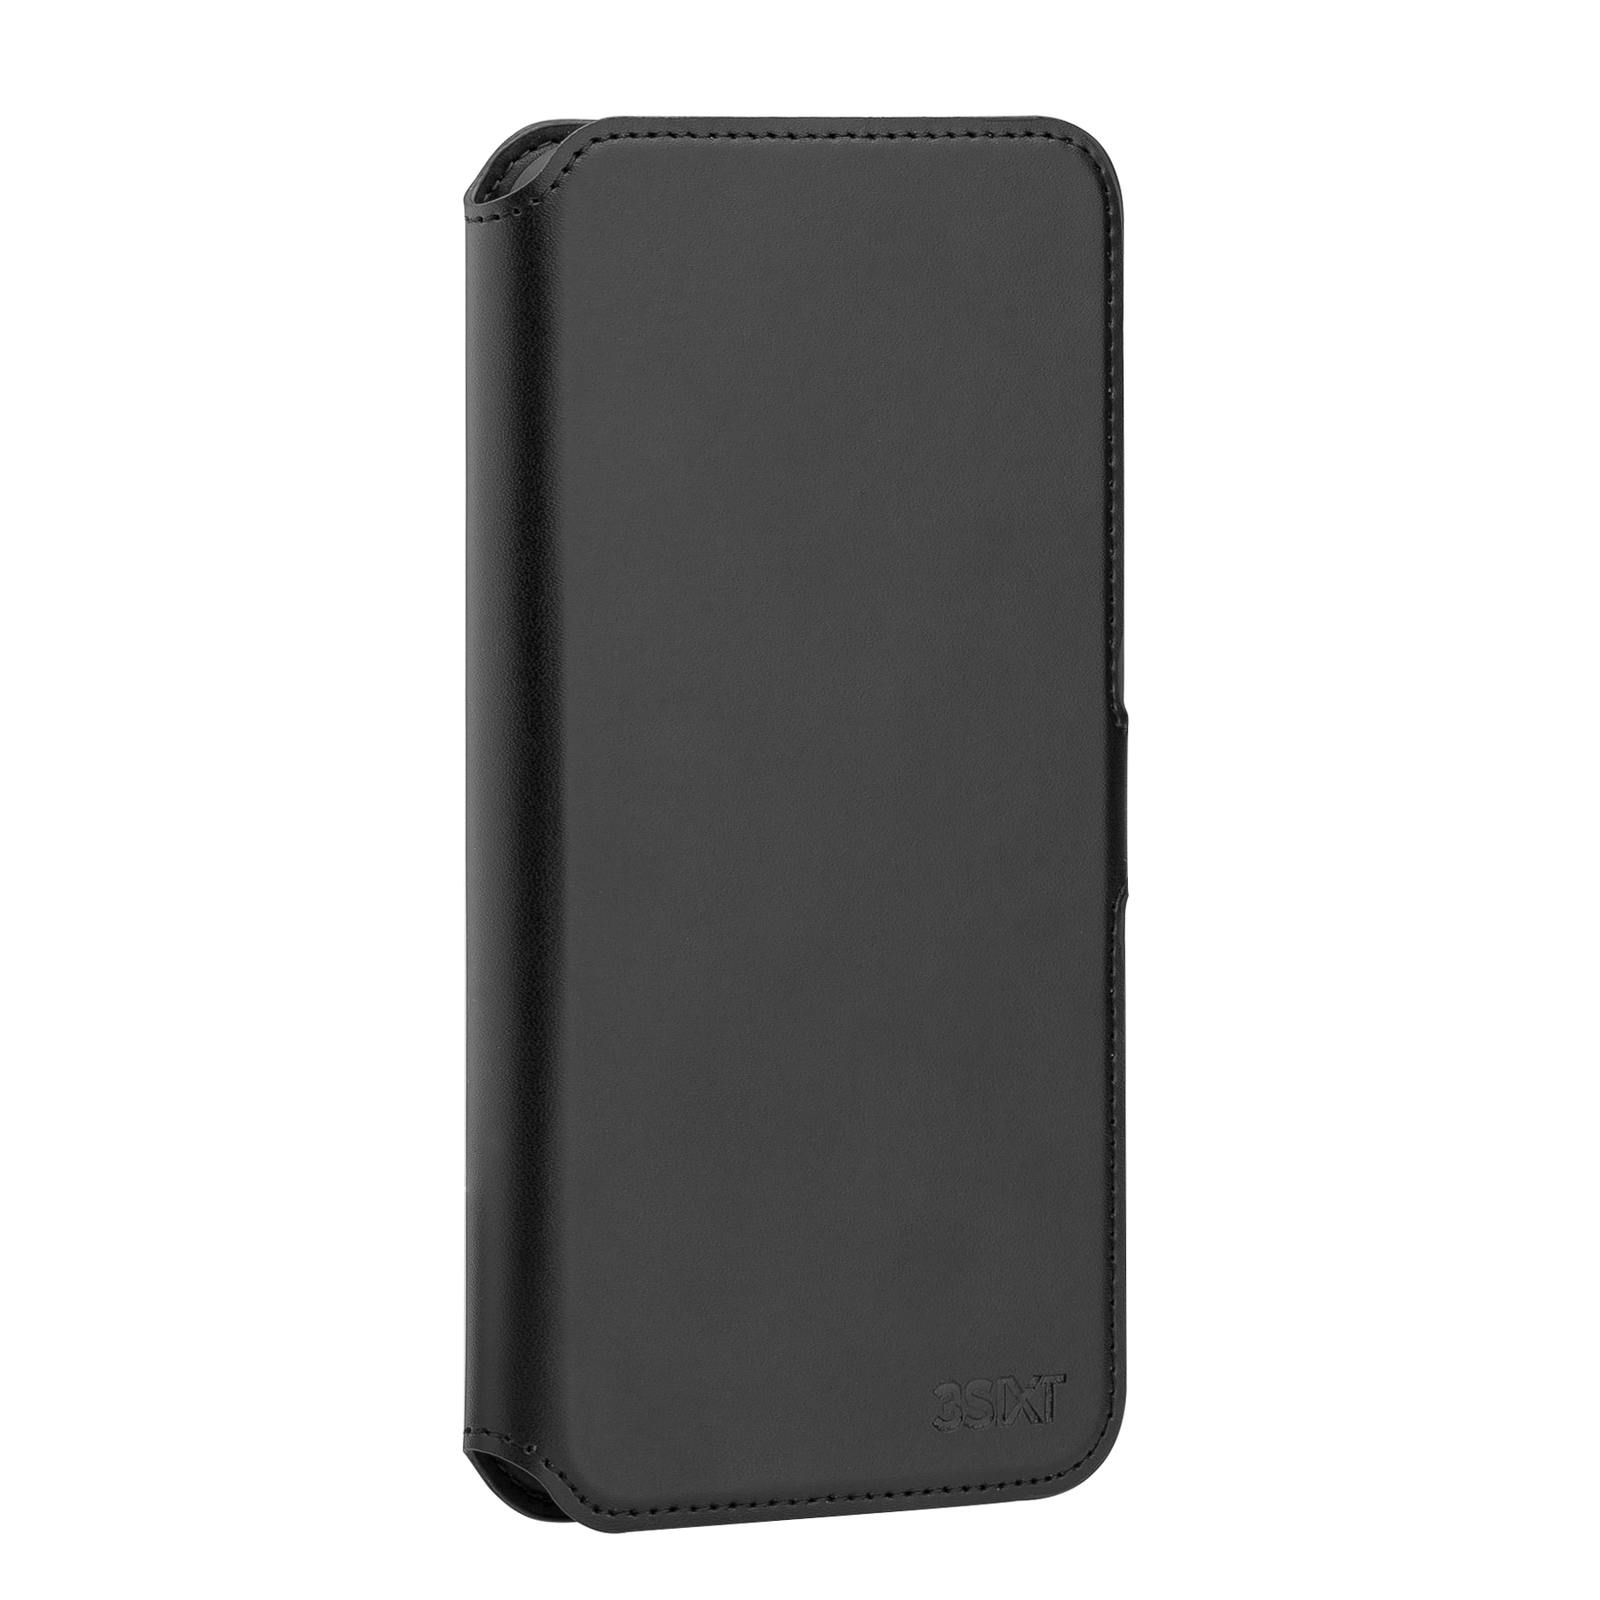 3SIXT: NeoWallet for Galaxy S10+ - Black image